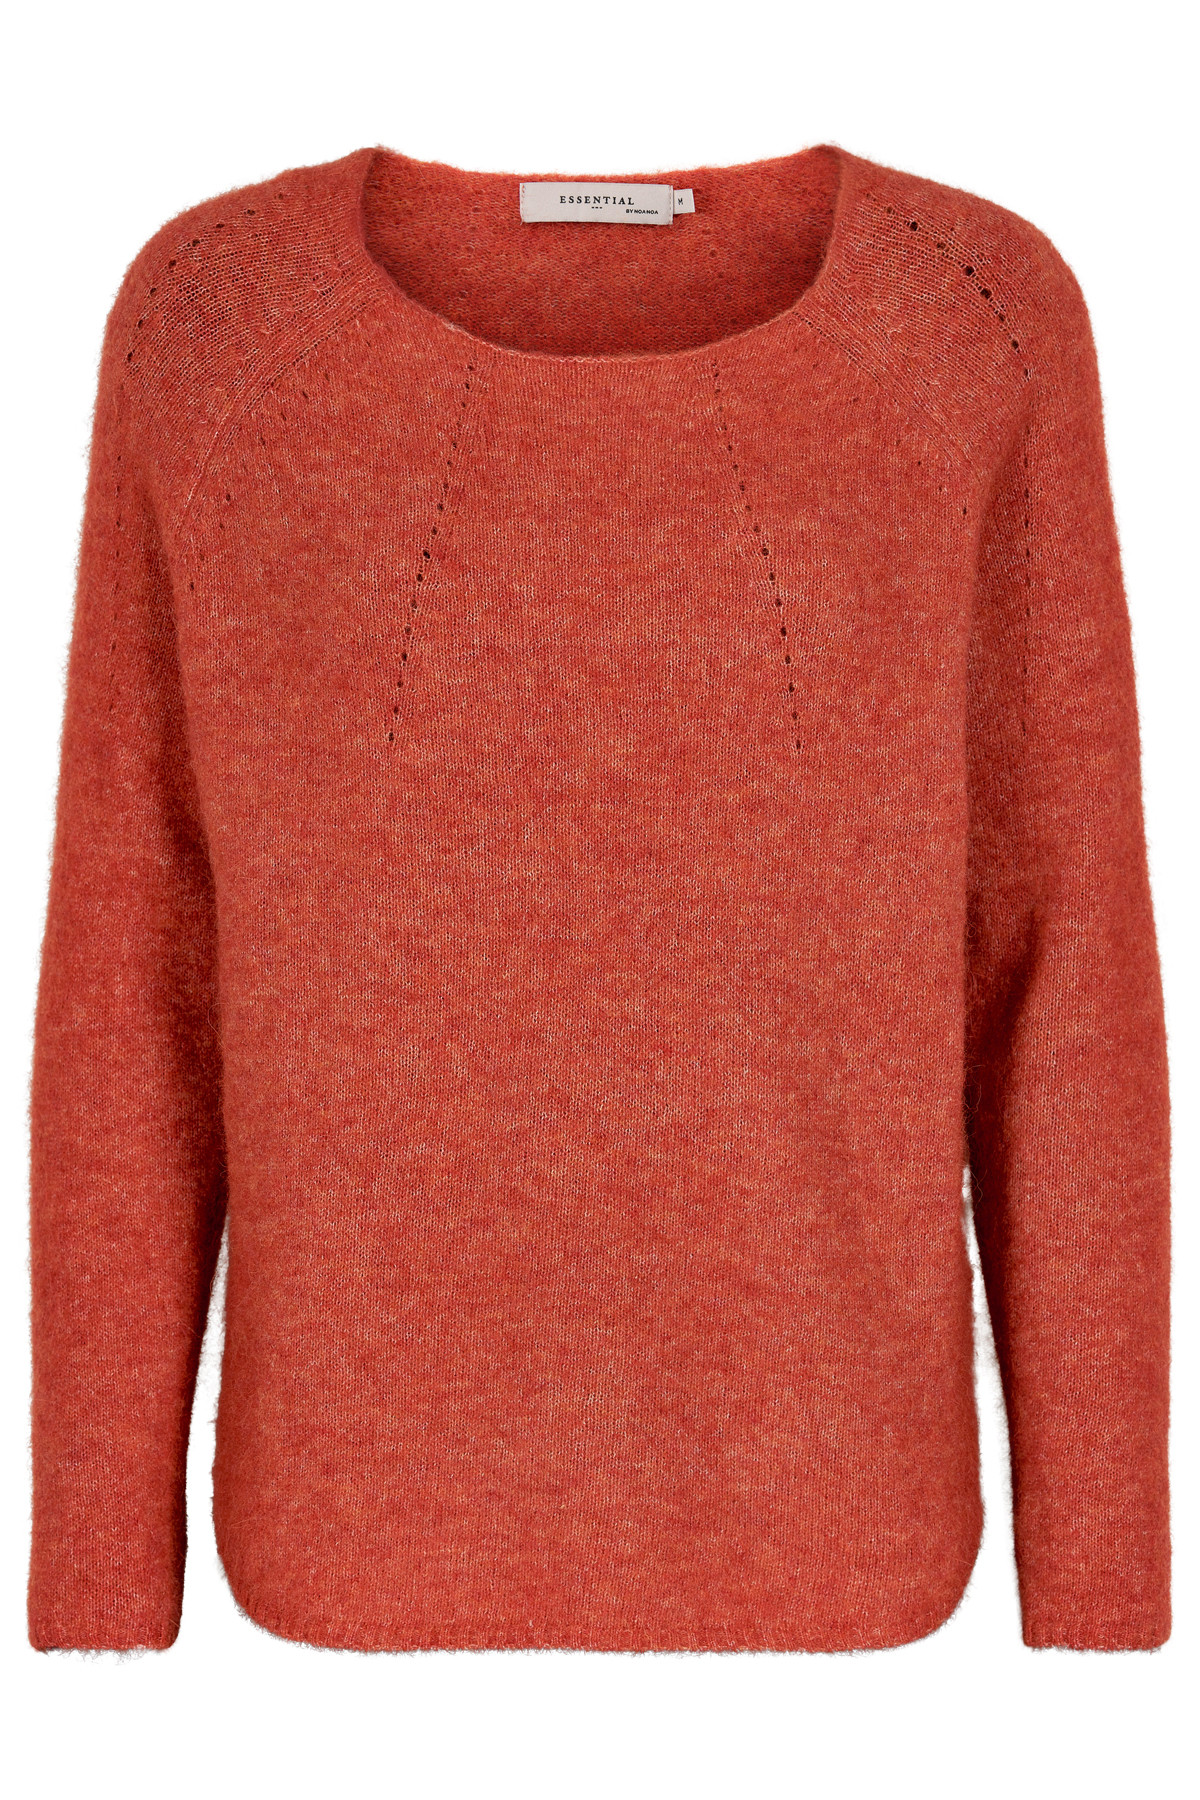 Image of   NOA NOA PULLOVER 1-8999-2 01068 (Red, L)